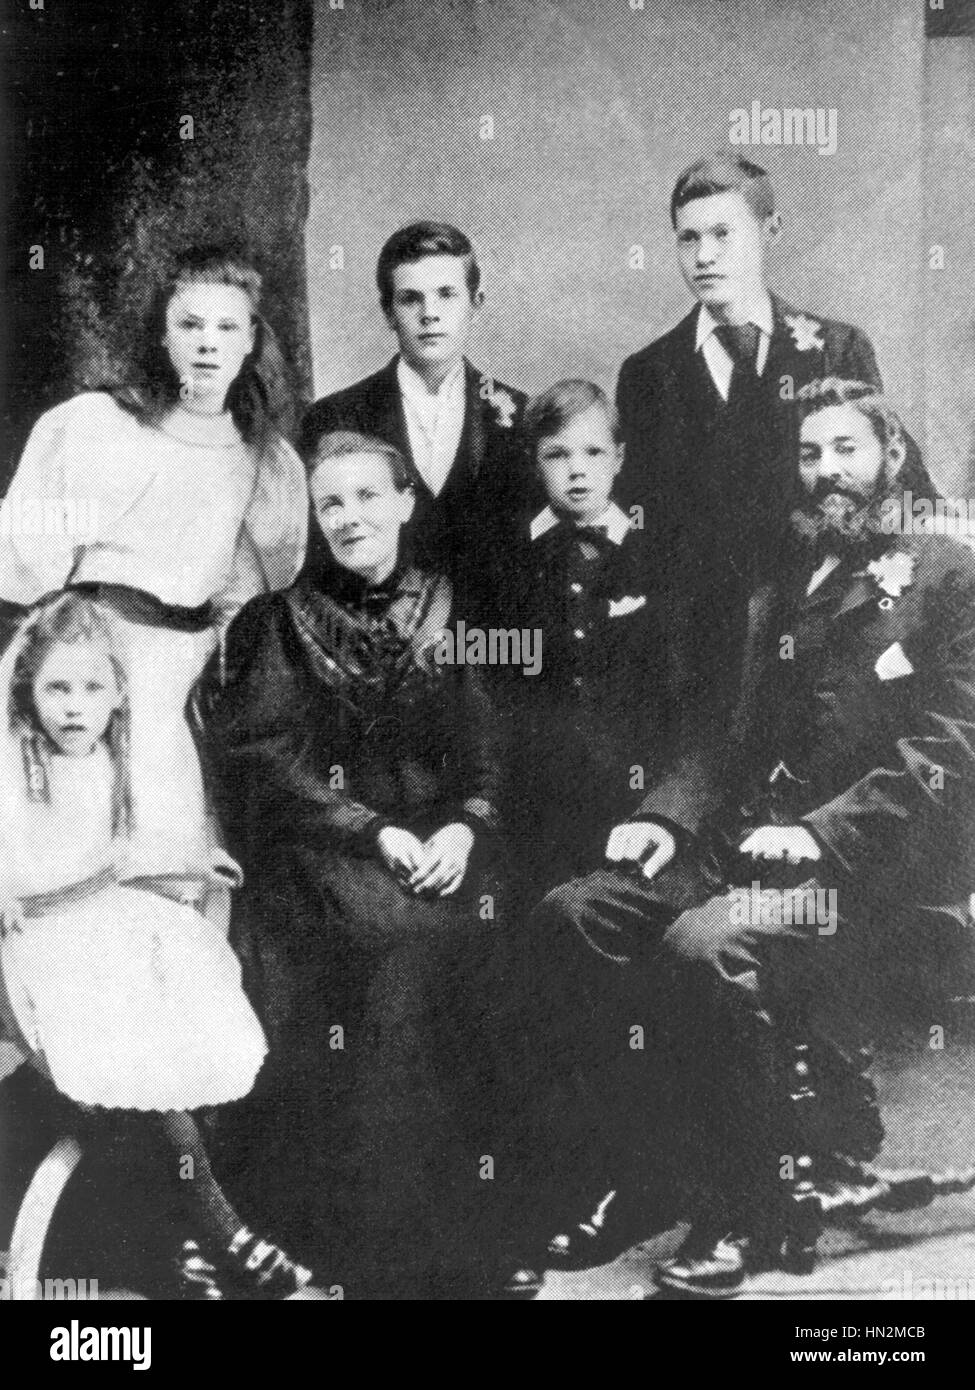 Lawrence Brothers Family